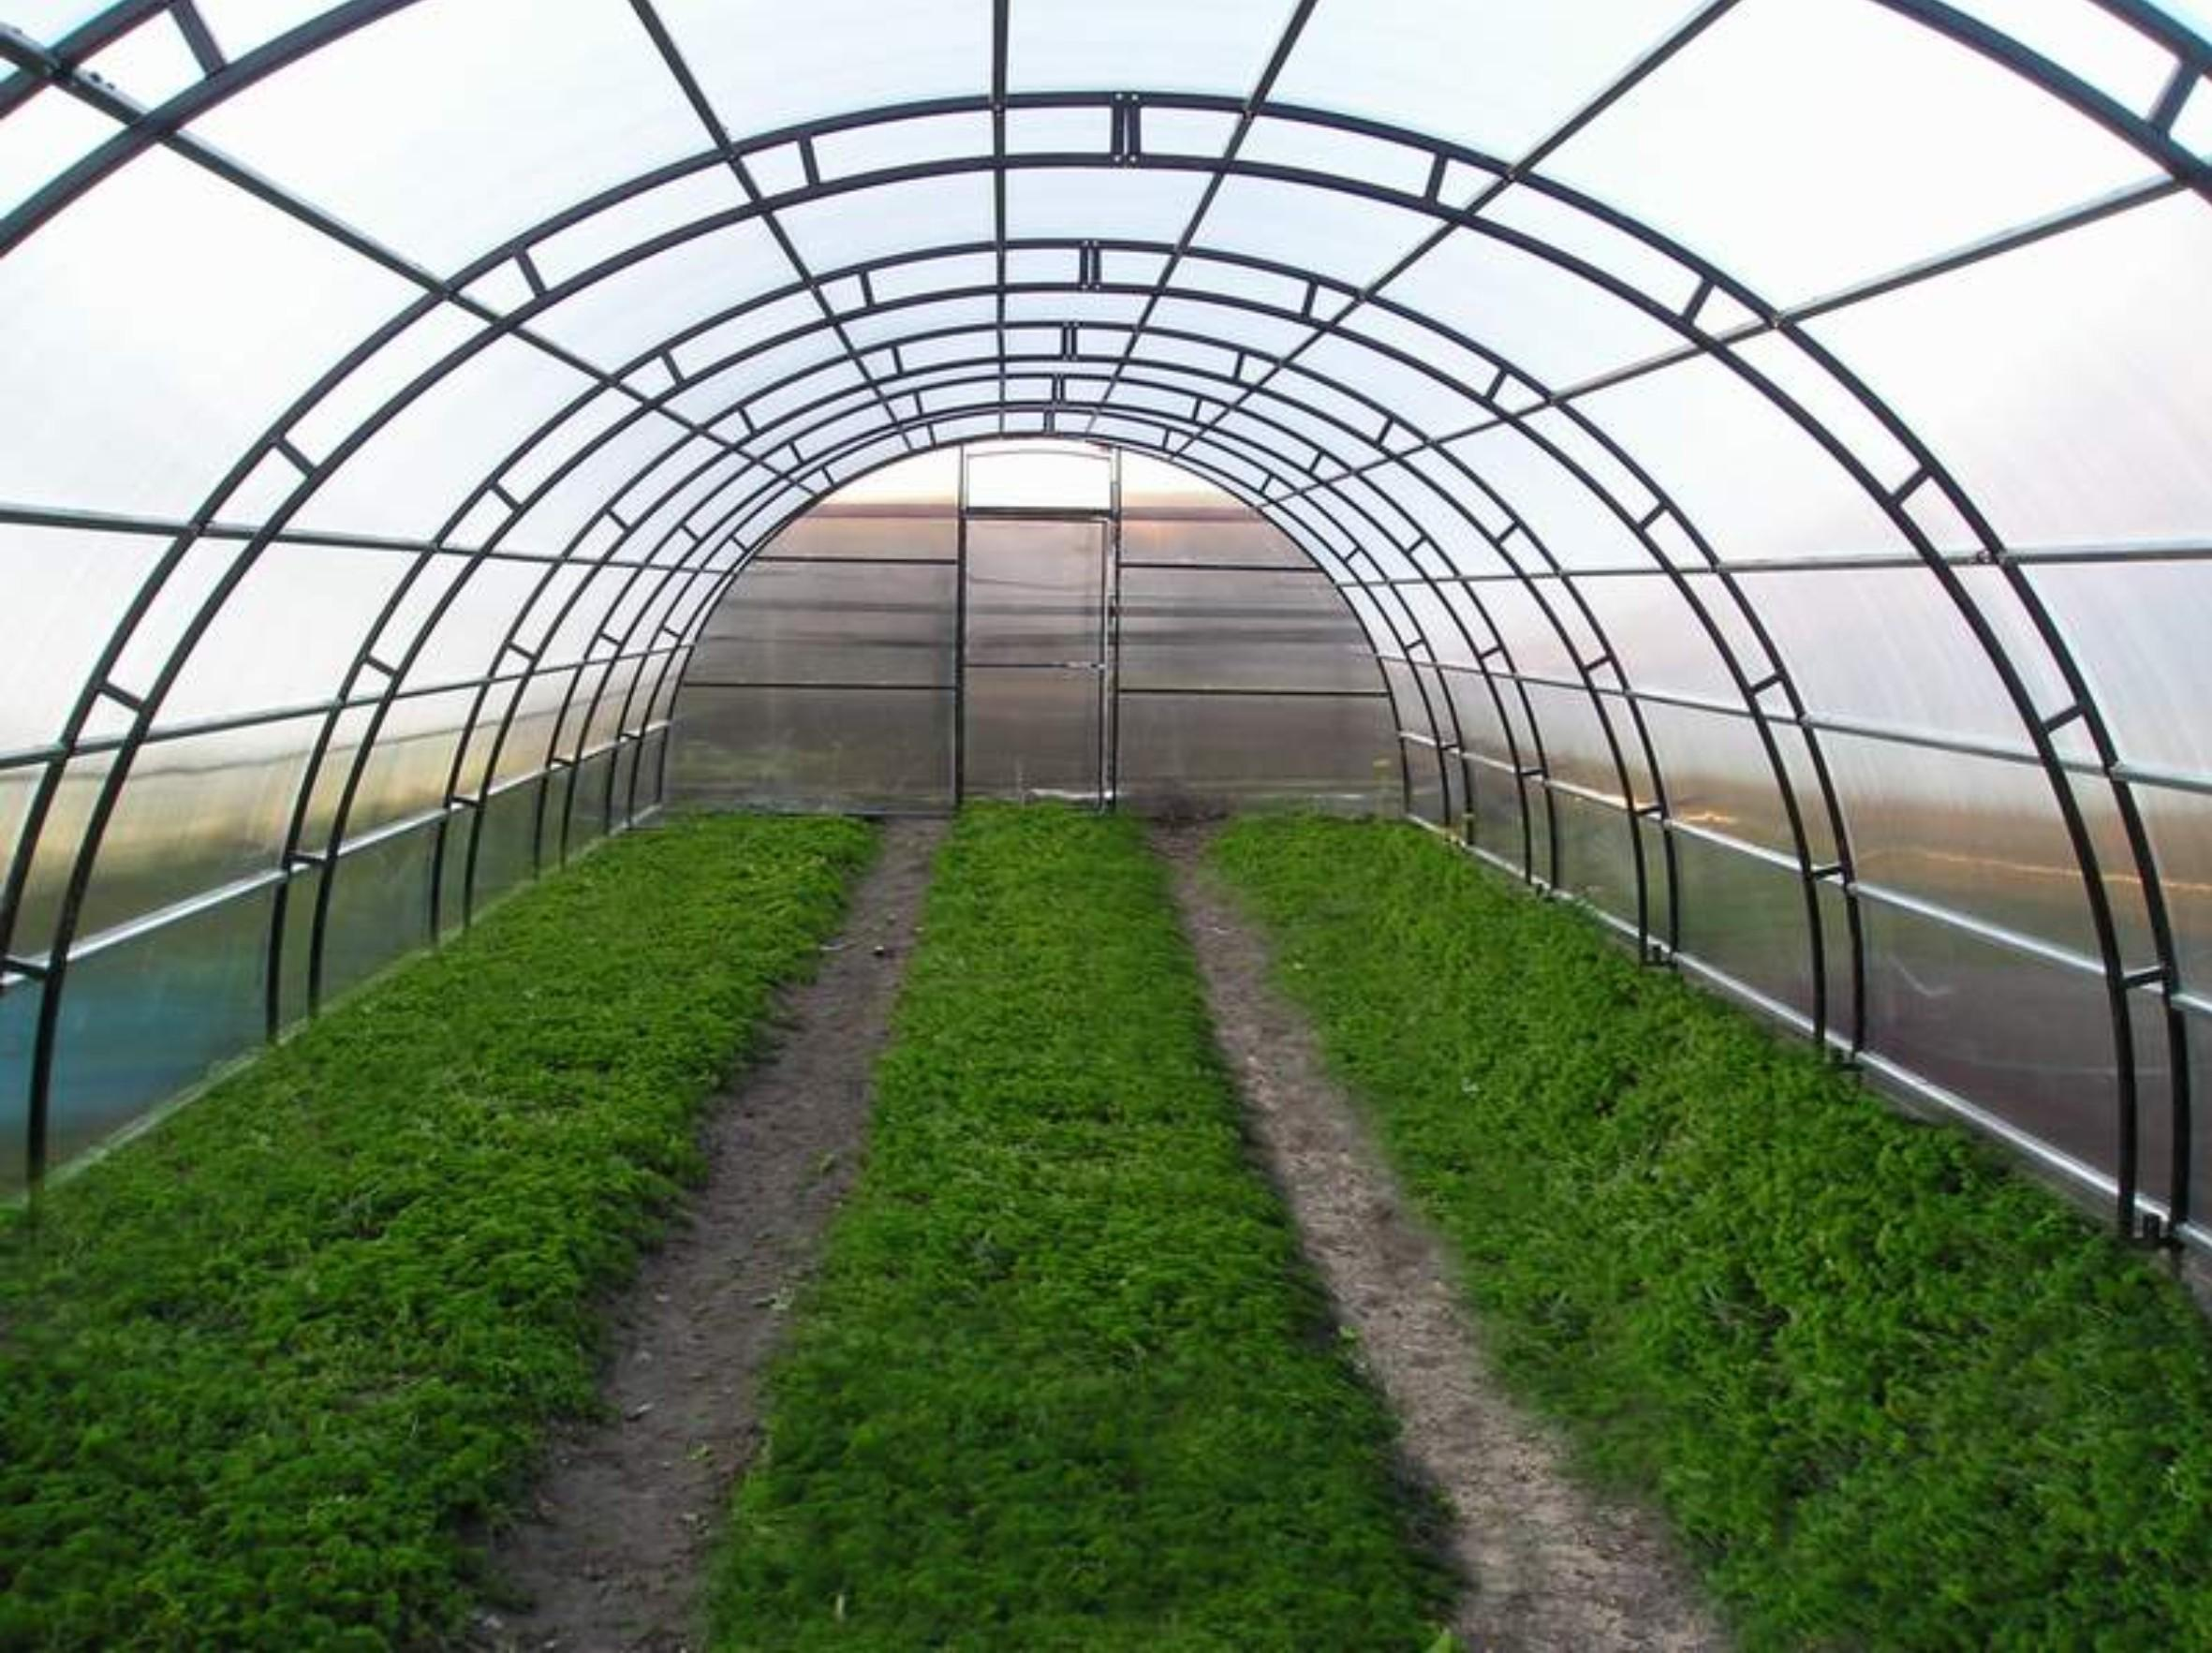 Alimardon Yodgorov built a greenhouse on 1,5 hectares with the assistance of the party in Rishtan district